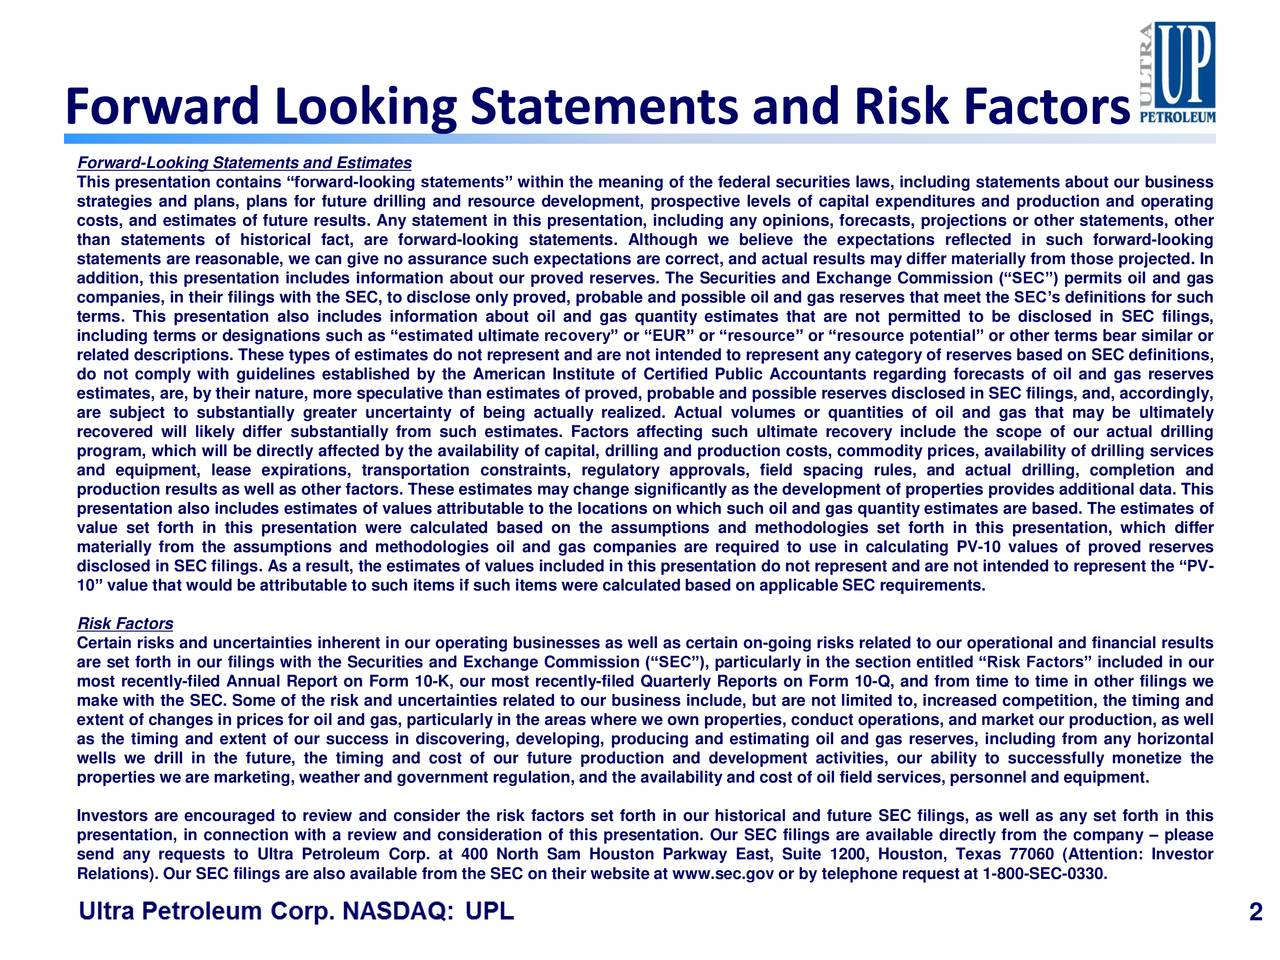 "Forward-Looking Statements and Estimates This presentation contains ""forward-looking statements"" within the meaning of the federal securities laws, including statements about our business strategies and plans, plans for future drilling and resource development, prospective levels of capital expenditures and production and operating costs, and estimates of future results. Any statement in this presentation, including any opinions, forecasts, projections or other statements, other than statements of historical fact, are forward-looking statements. Although we believe the expectations reflected in such forward-looking statements are reasonable, we can give no assurance such expectations are correct, and actual results may differ materially from those projected. In addition, this presentation includes information about our proved reserves. The Securities and Exchange Commission (""SEC"") permits oil and gas companies, in their filings with the SEC, to disclose only proved, probable and possible oil and gas reserves that meet the SEC's definitions for such terms. This presentation also includes information about oil and gas quantity estimates that are not permitted to be disclosed in SEC filings, including terms or designations such as ""estimated ultimate recovery"" or ""EUR"" or ""resource"" or ""resource potential"" or other terms bear similar or related descriptions. These types of estimates do not represent and are not intended to represent any category of reserves based on SEC definitions, do not comply with guidelines established by the American Institute of Certified Public Accountants regarding forecasts of oil and gas reserves estimates, are, by their nature, more speculative than estimates of proved, probable and possible reserves disclosed in SEC filings, and, accordingly, are subject to substantially greater uncertainty of being actually realized. Actual volumes or quantities of oil and gas that may be ultimately recovered will likely differ substantially from such estimates. Factors affecting such ultimate recovery include the scope of our actual drilling program, which will be directly affected by the availability of capital, drilling and production costs, commodity prices, availability of drilling services and equipment, lease expirations, transportation constraints, regulatory approvals, field spacing rules, and actual drilling, completion and production results as well as other factors. These estimates may change significantly as the development of properties provides additional data. This presentation also includes estimates of values attributable to the locations on which such oil and gas quantity estimates are based. The estimates of value set forth in this presentation were calculated based on the assumptions and methodologies set forth in this presentation, which differ materially from the assumptions and methodologies oil and gas companies are required to use in calculating PV-10 values of proved reserves disclosed in SEC filings. As a result, the estimates of values included in this presentation do not represent and are not intended to represent the ""PV- 10"" value that would be attributable to such items if such items were calculated based on applicable SEC requirements. Risk Factors Certain risks and uncertainties inherent in our operating businesses as well as certain on-going risks related to our operational and financial results are set forth in our filings with the Securities and Exchange Commission (""SEC""), particularly in the section entitled ""Risk Factors"" included in our most recently-filed Annual Report on Form 10-K, our most recently-filed Quarterly Reports on Form 10-Q, and from time to time in other filings we make with the SEC. Some of the risk and uncertainties related to our business include, but are not limited to, increased competition, the timing and extent of changes in prices for oil and gas, particularly in the areas where we own properties, conduct operations, and market our production, as well as the timing and extent of our success in discovering, developing, producing and estimating oil and gas reserves, including from any horizontal wells we drill in the future, the timing and cost of our future production and development activities, our ability to successfully monetize the properties we are marketing, weather and government regulation, and the availability and cost of oil field services, personnel and equipment. Investors are encouraged to review and consider the risk factors set forth in our historical and future SEC filings, as well as any set forth in this presentation, in connection with a review and consideration of this presentation. Our SEC filings are available directly from the company – please send any requests to Ultra Petroleum Corp. at 400 North Sam Houston Parkway East, Suite 1200, Houston, Texas 77060 (Attention: Investor Relations). Our SEC filings are also available from the SEC on their website at www.sec.gov or by telephone request at 1-800-SEC-0330. 2"